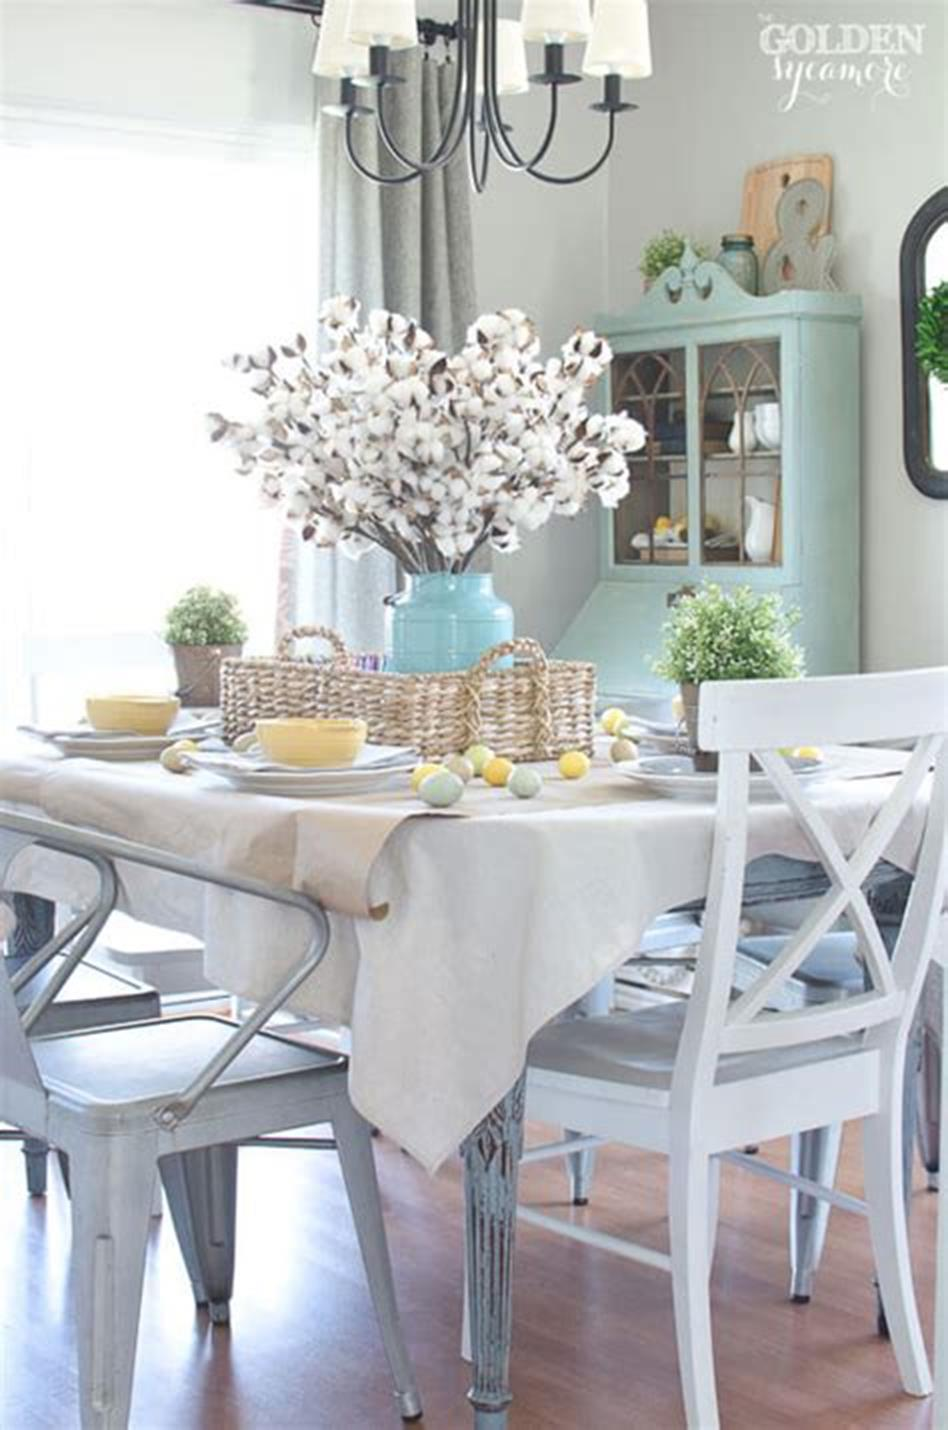 37 Beautiful Farmhouse Spring Decorating Ideas On a Budget for 2019 12